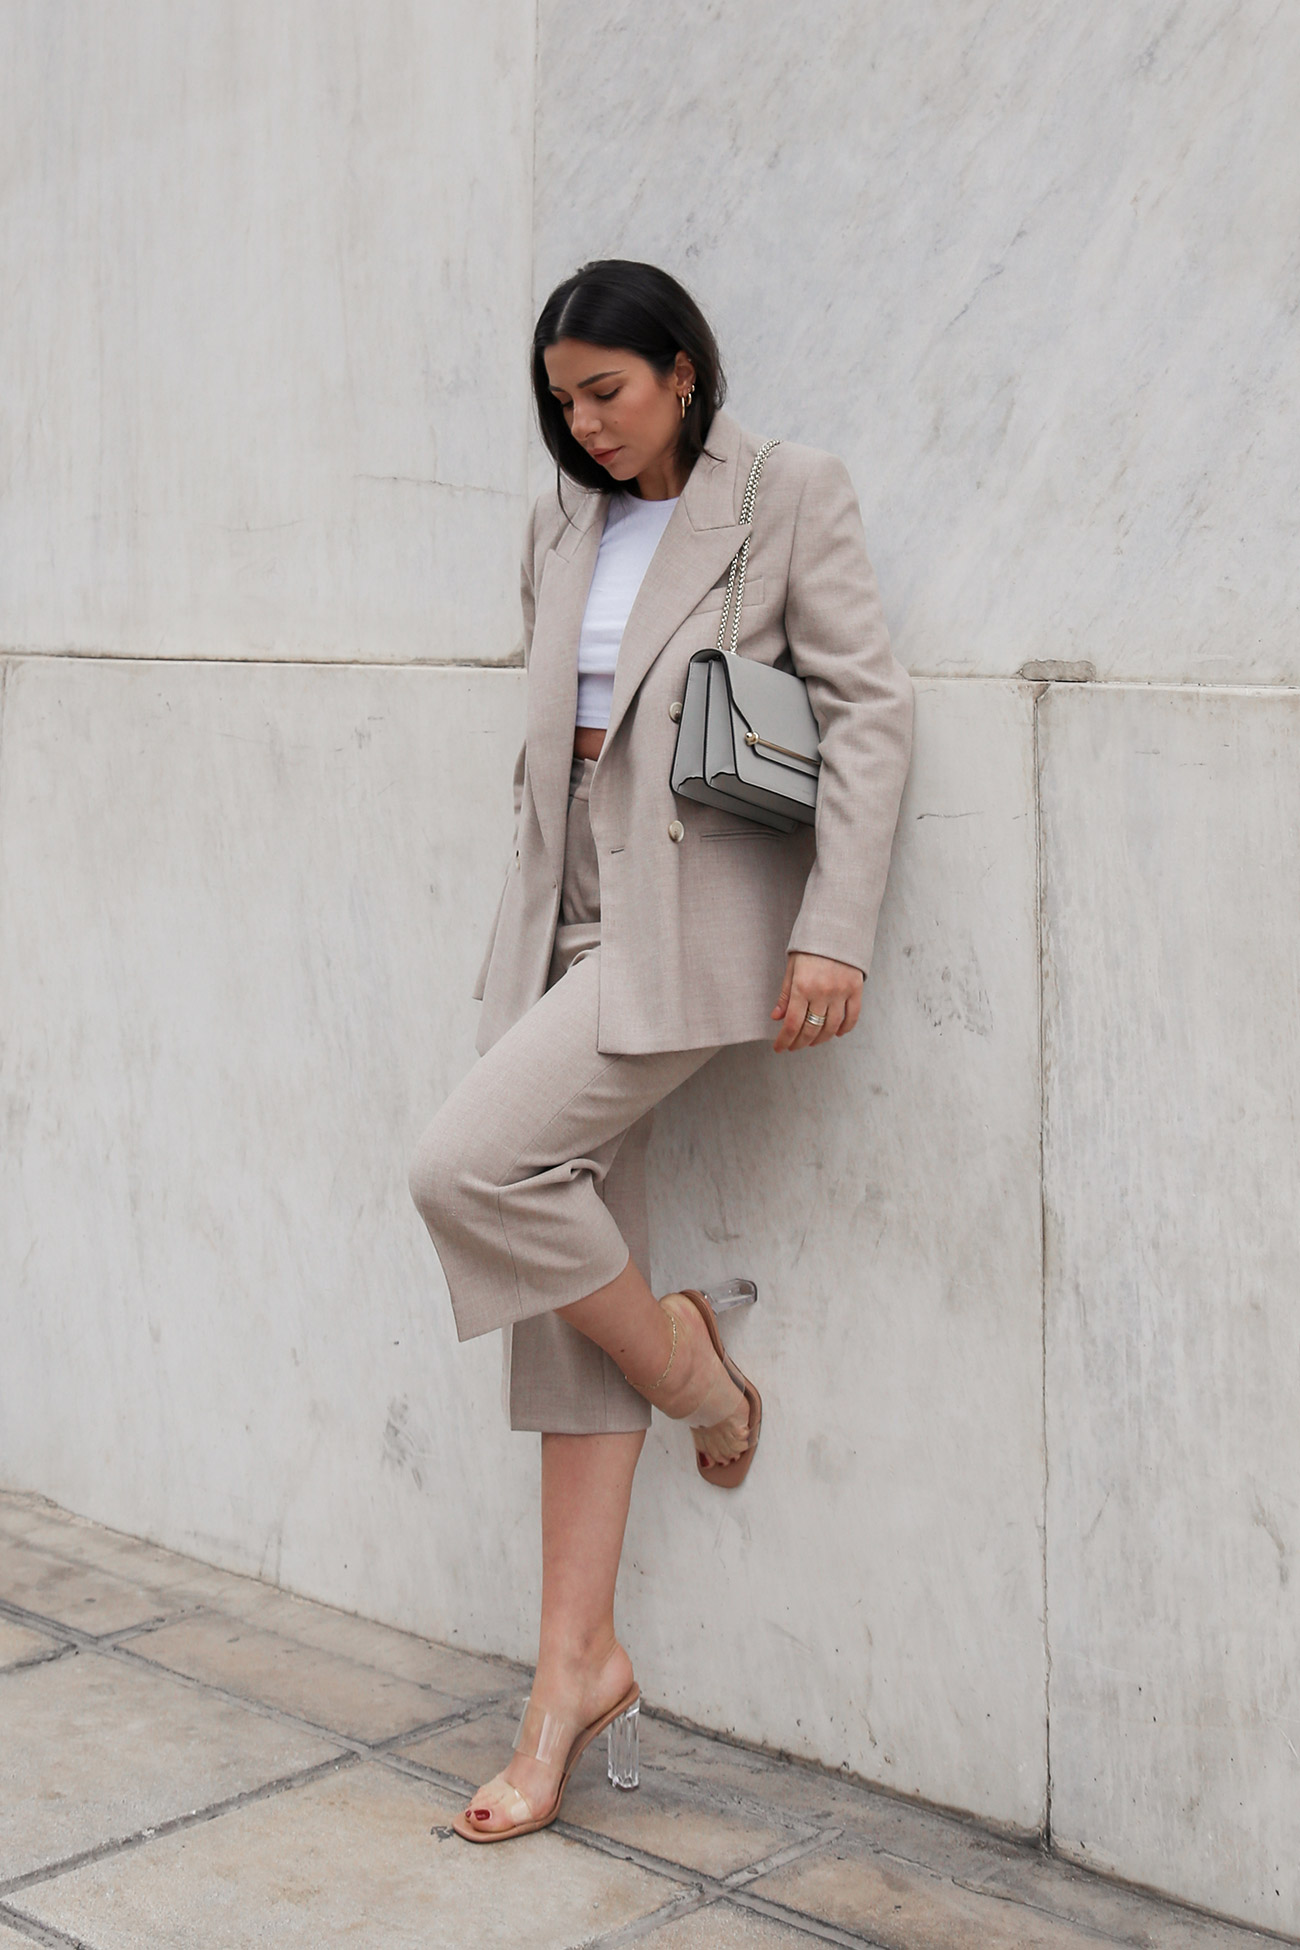 crop pants suit with mules and Strathberry bag, worn by Stella Asteria - Fashion & lifestyle blogger